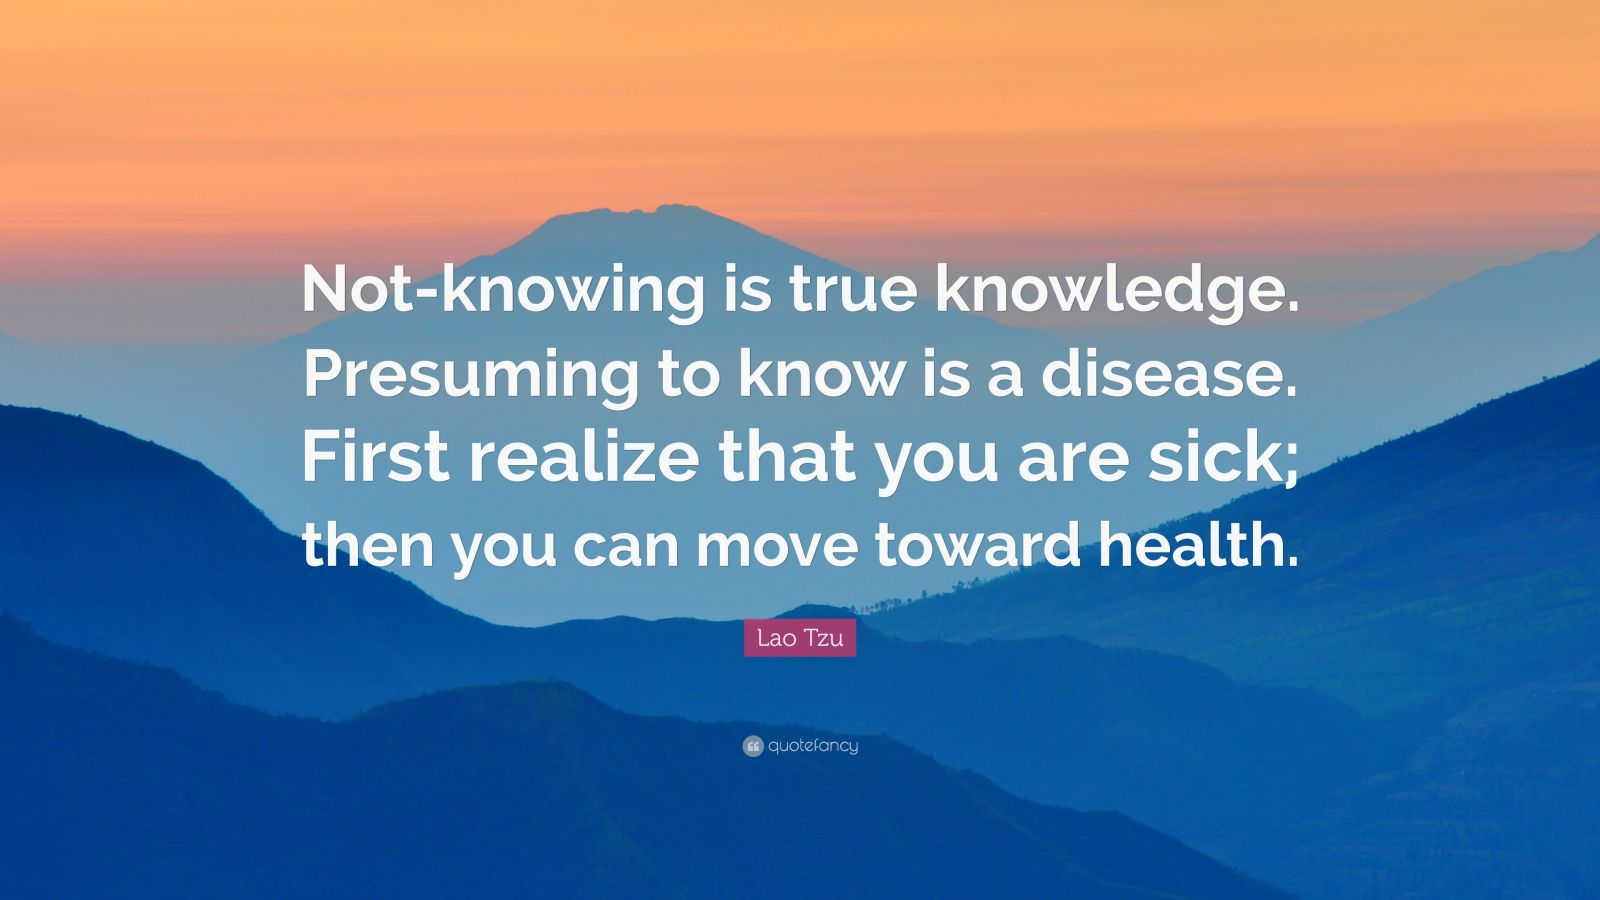 """Lao Tzu Quote: """"Not-knowing is true knowledge. Presuming to know is a disease. First realize that you are sick; then you can move toward health."""""""